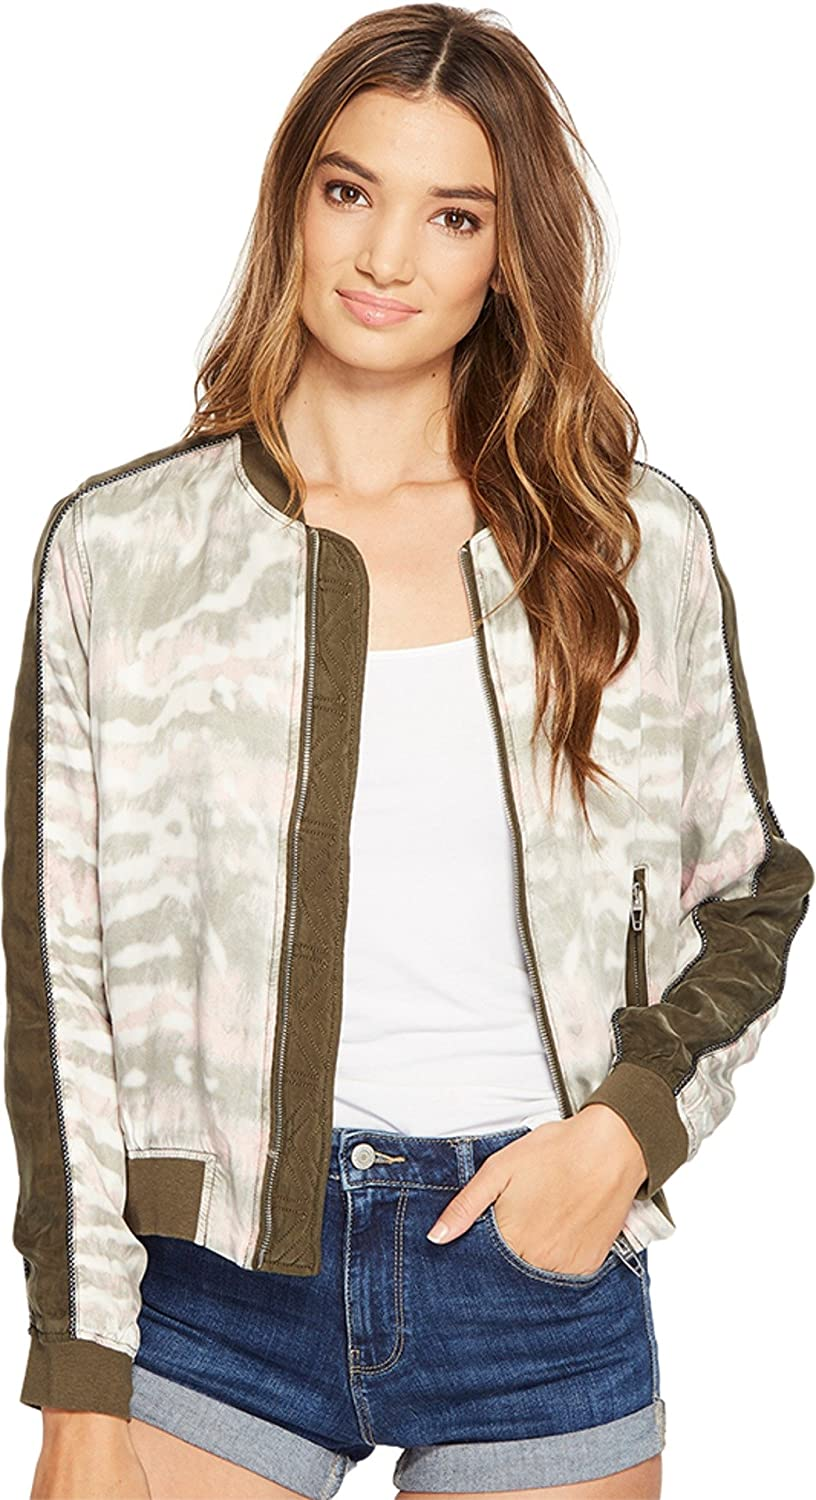 [BLANKNYC] Blank NYC Womens Novelty Detailed Bomber Jacket in Green Beaner